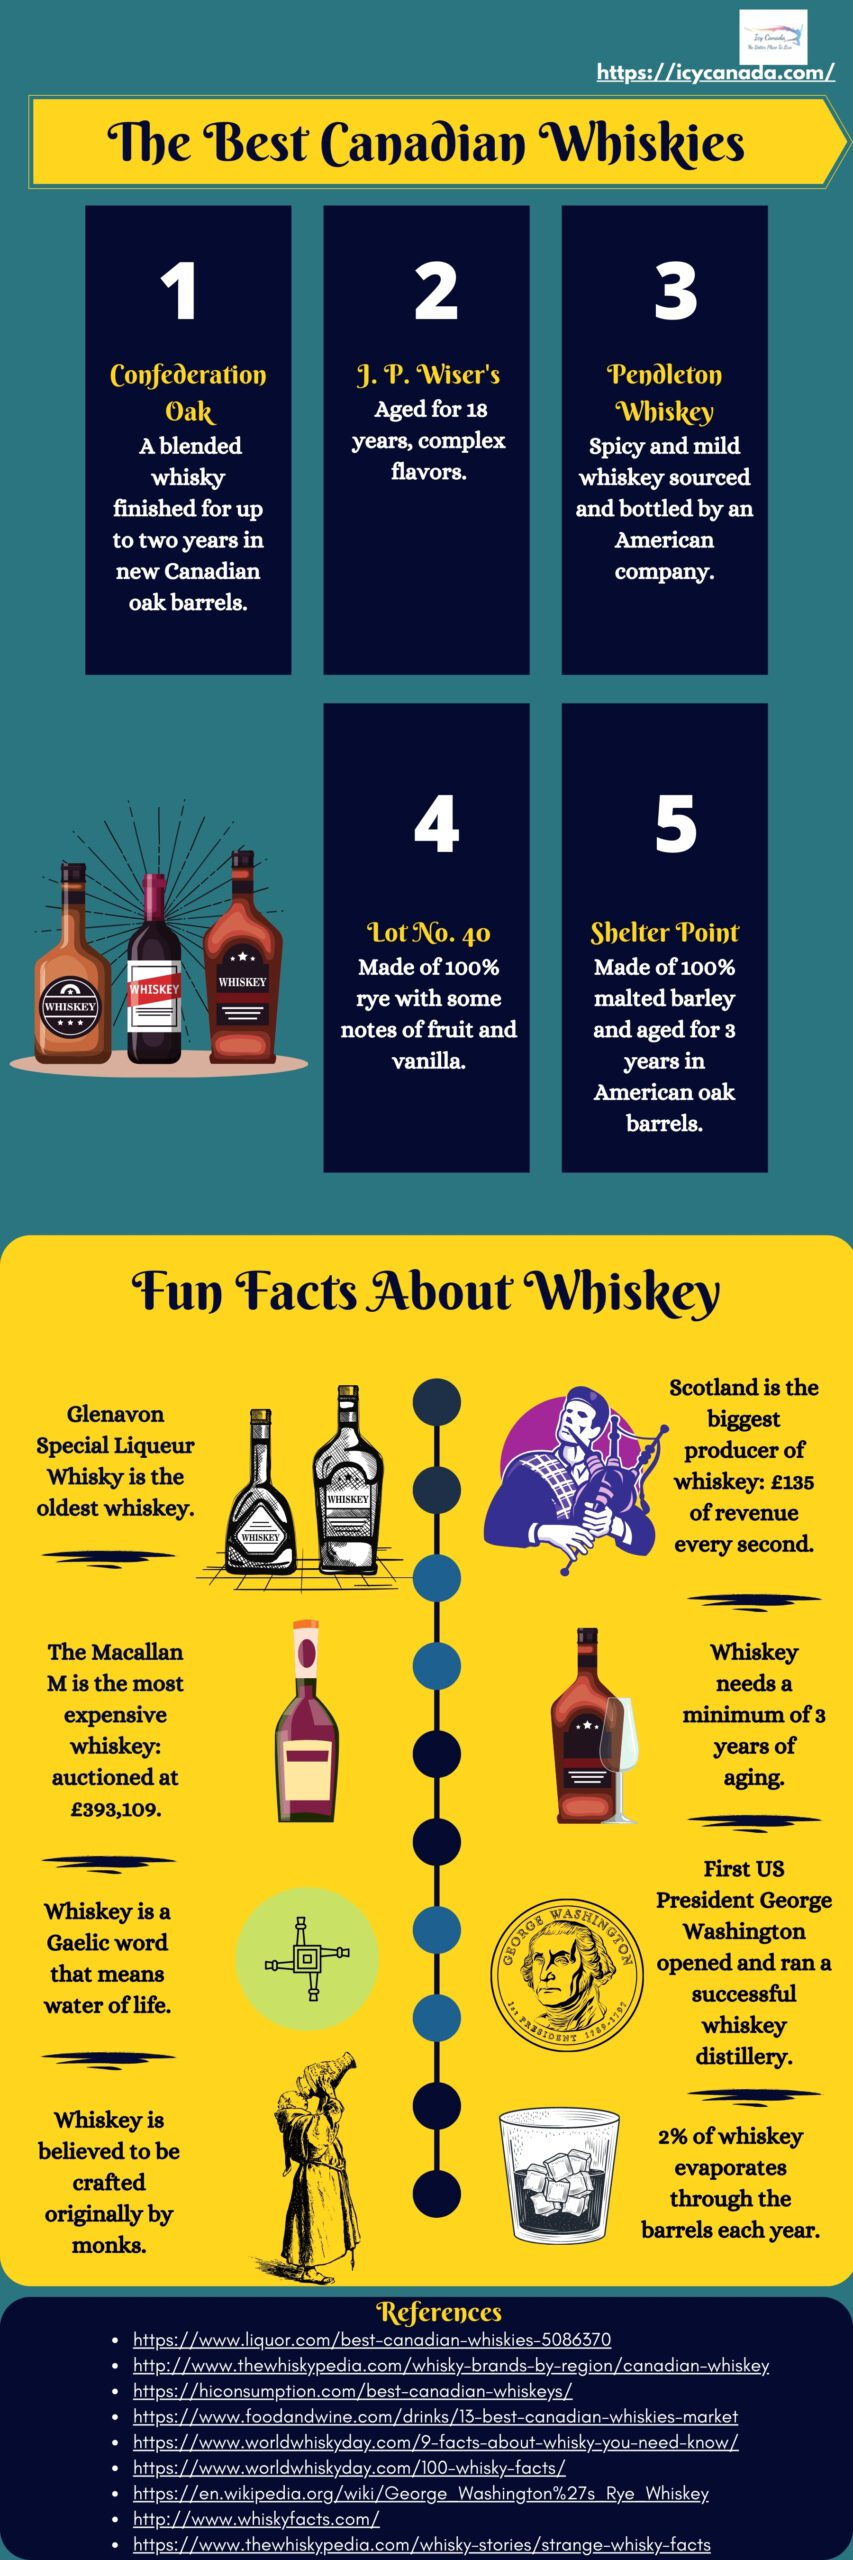 The Best Canadian Whiskies